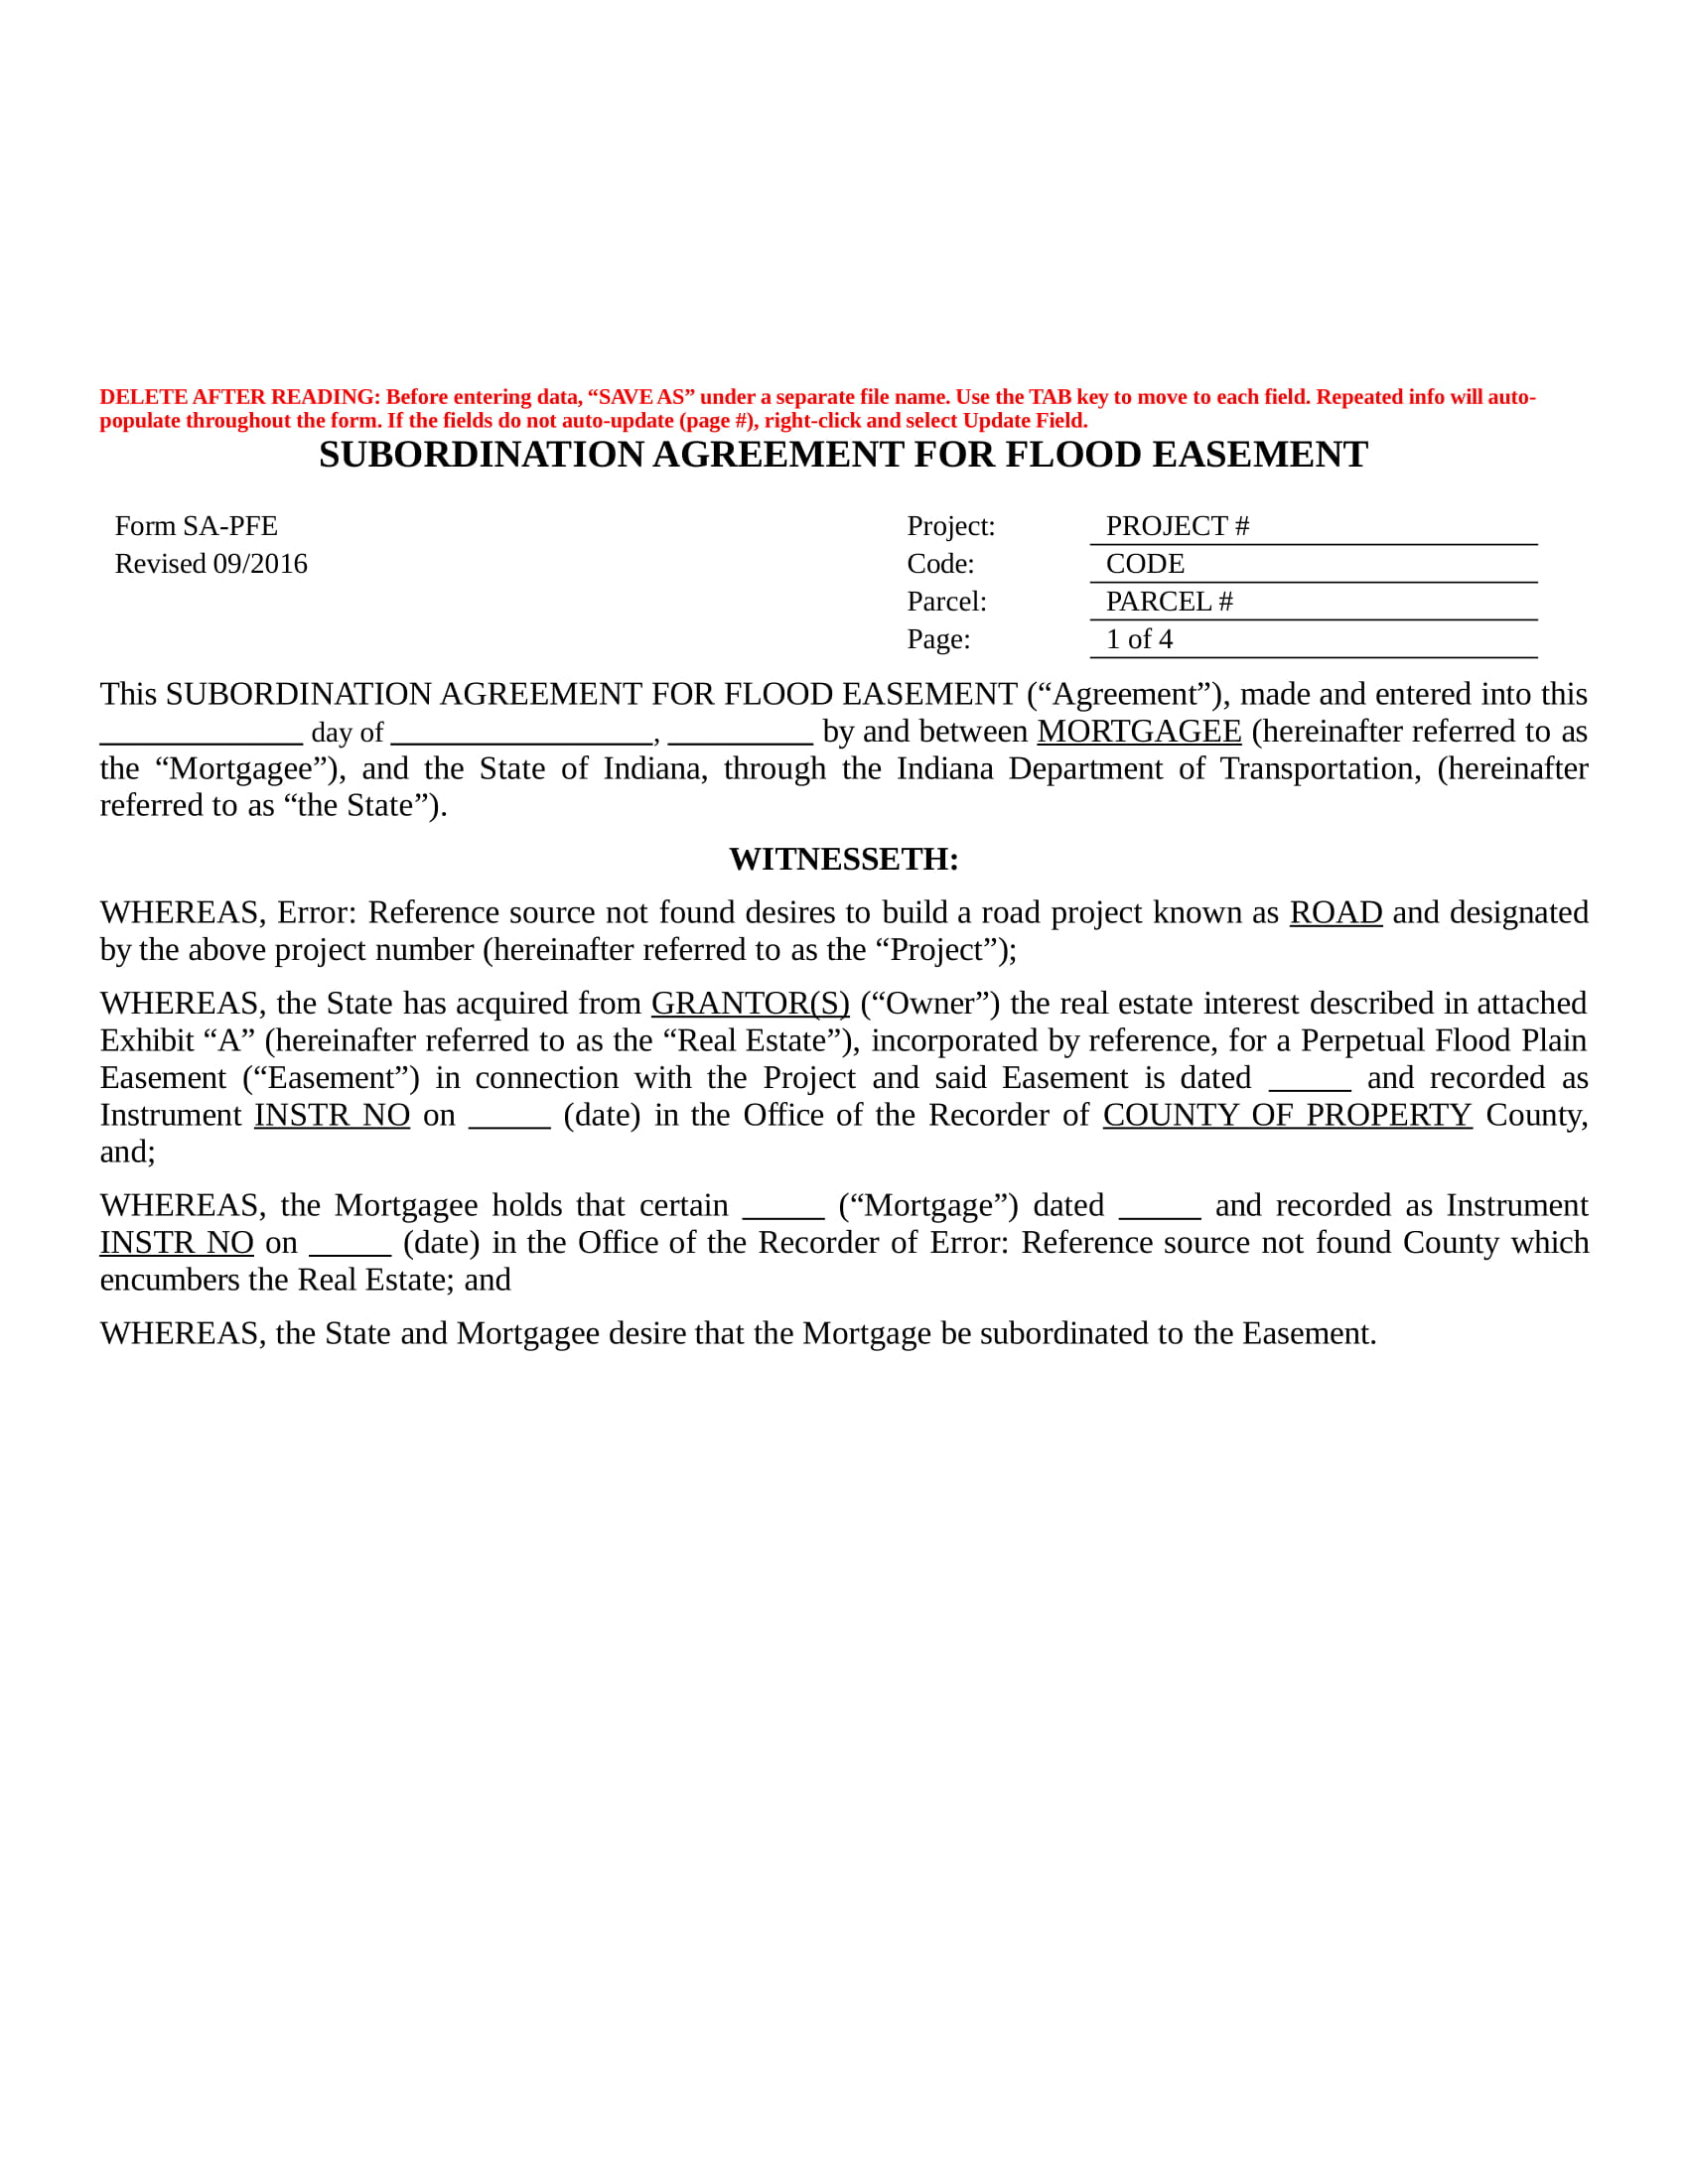 flood easement subordination agreement contract in doc 1